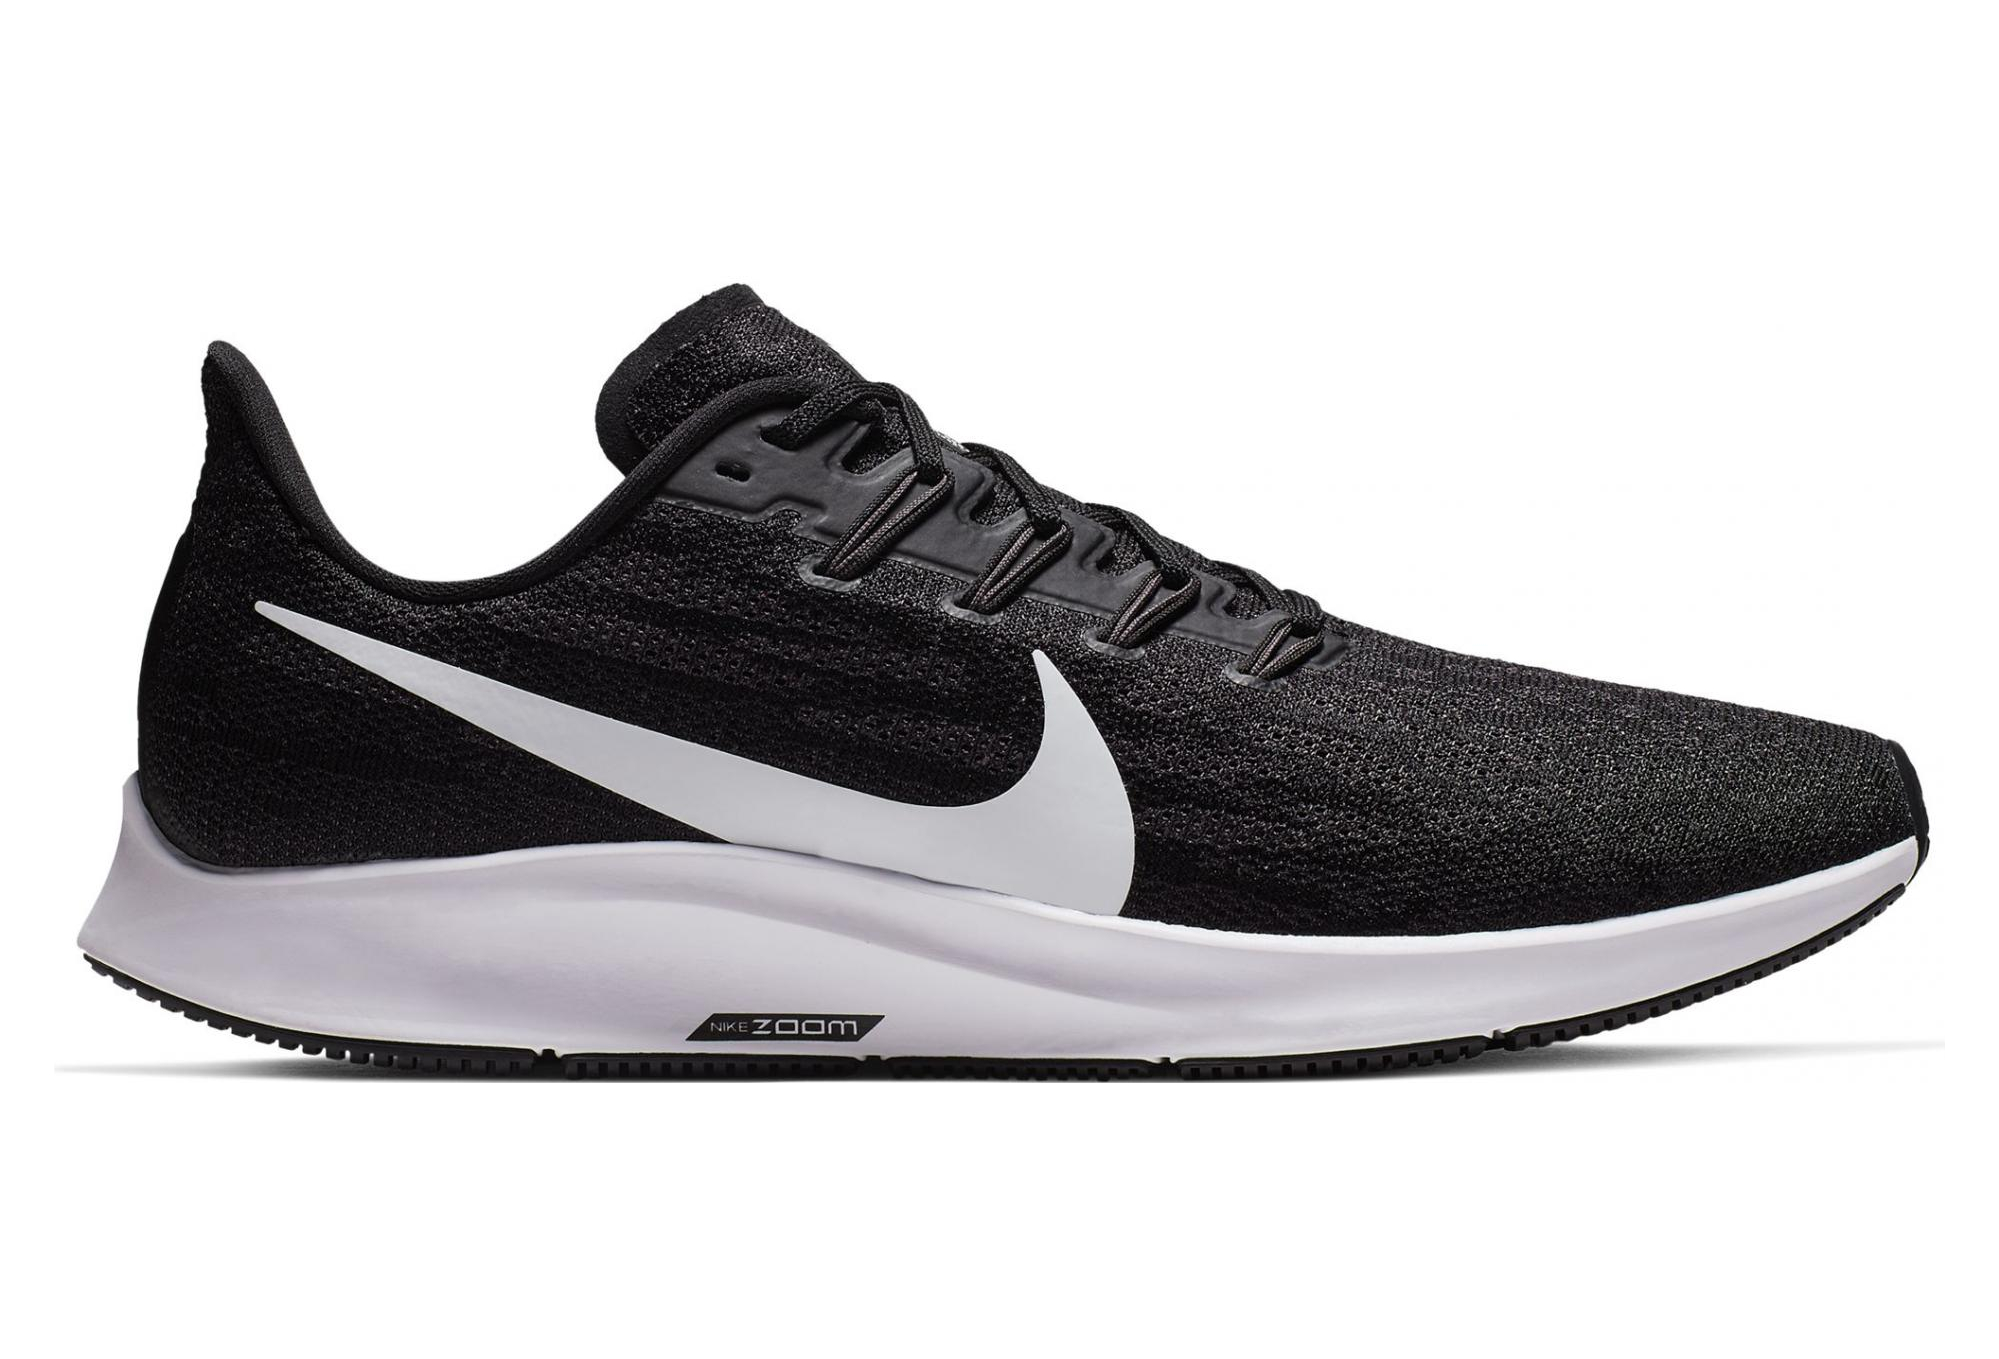 super popular 969c4 22ccc Nike Air Zoom Pegasus 36 Black White Men